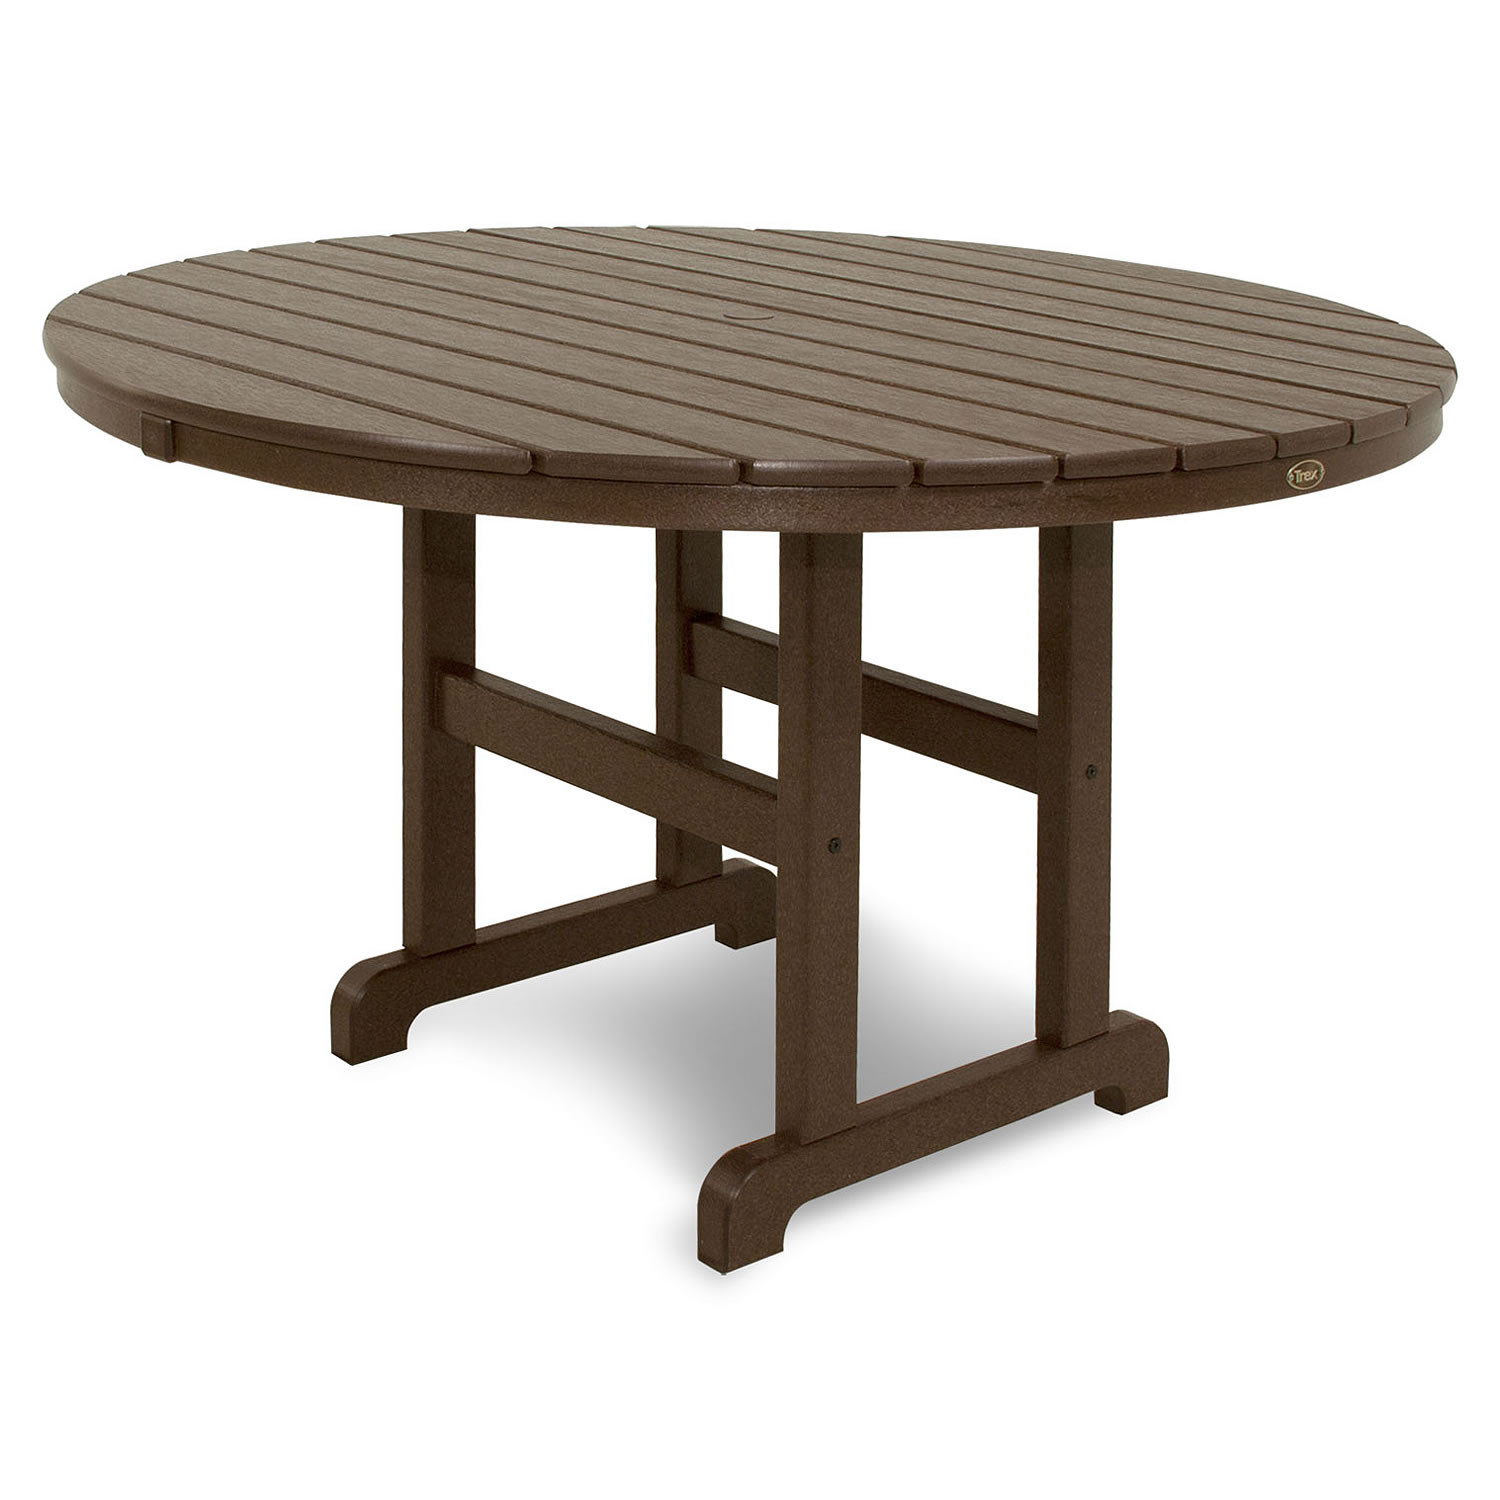 Trex 174 Outdoor Furniture Monterey Bay 48 In Dining Table